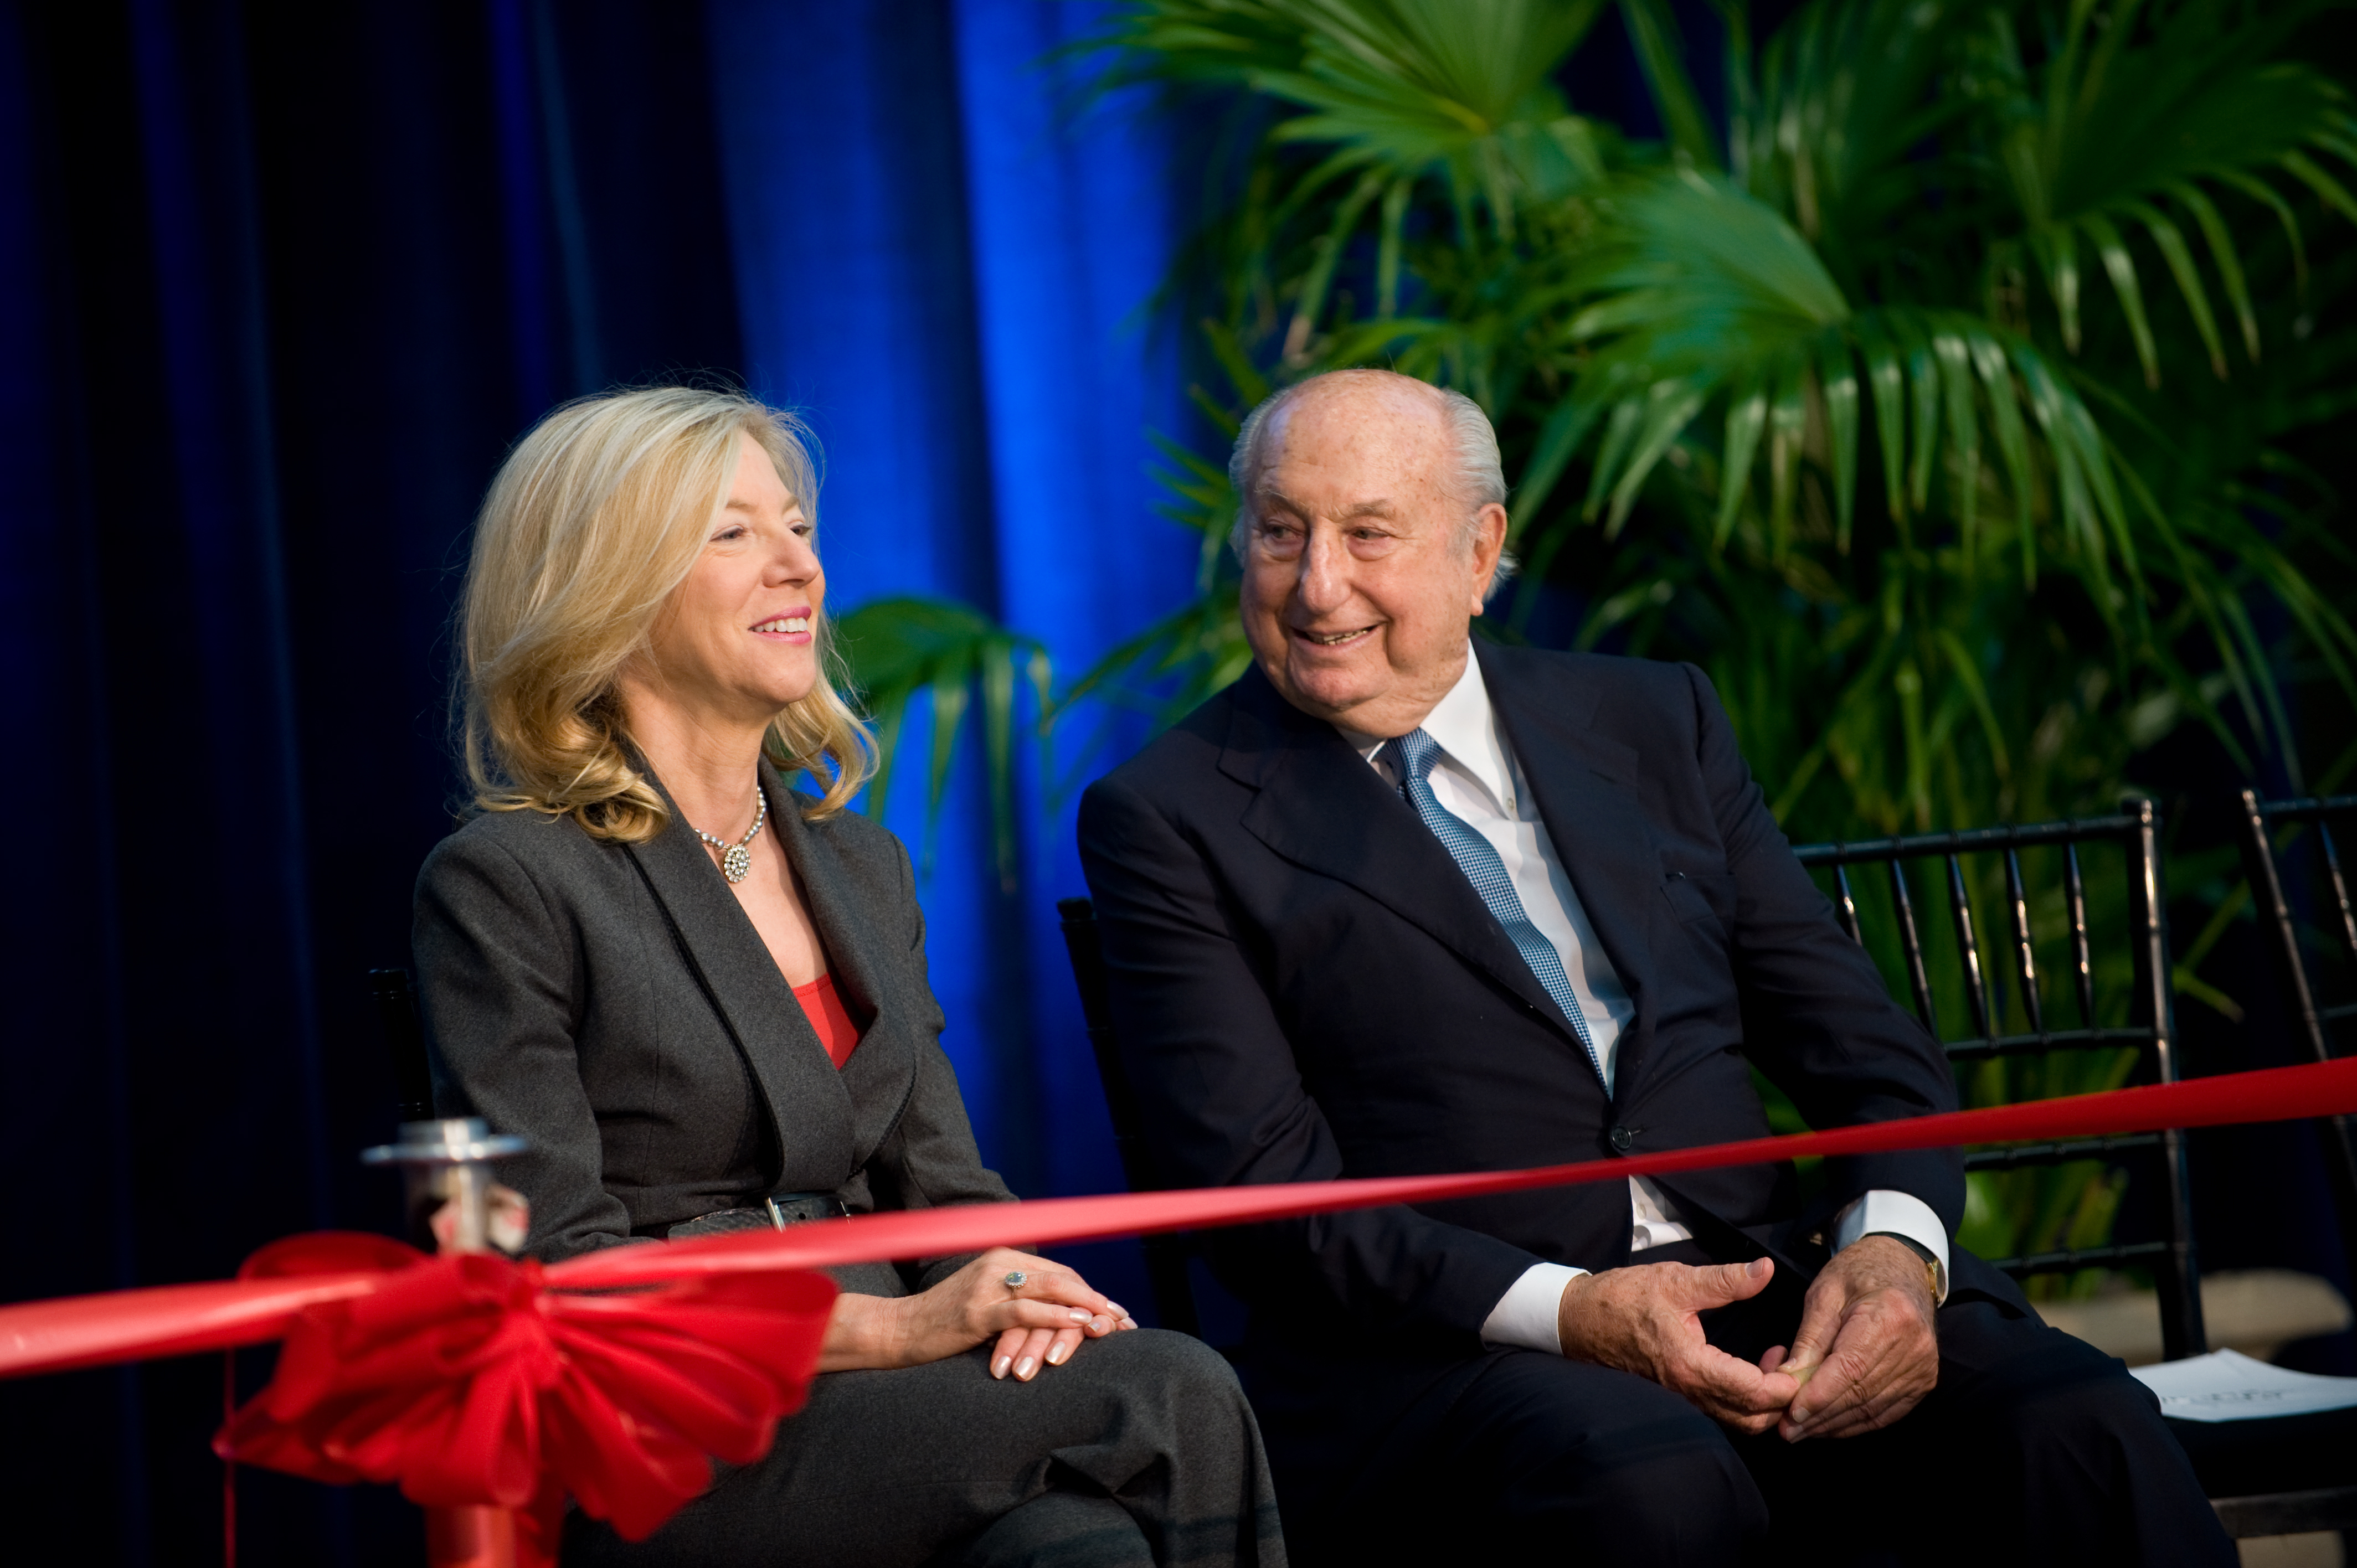 Ray Perelman takes the stage with President Gutmann for the ribbon-cutting of the Ruth and Raymond Perelman Center for Advanced Medicine on October 2, 2008. Photo credit: Jacques-Jean Tiziou.